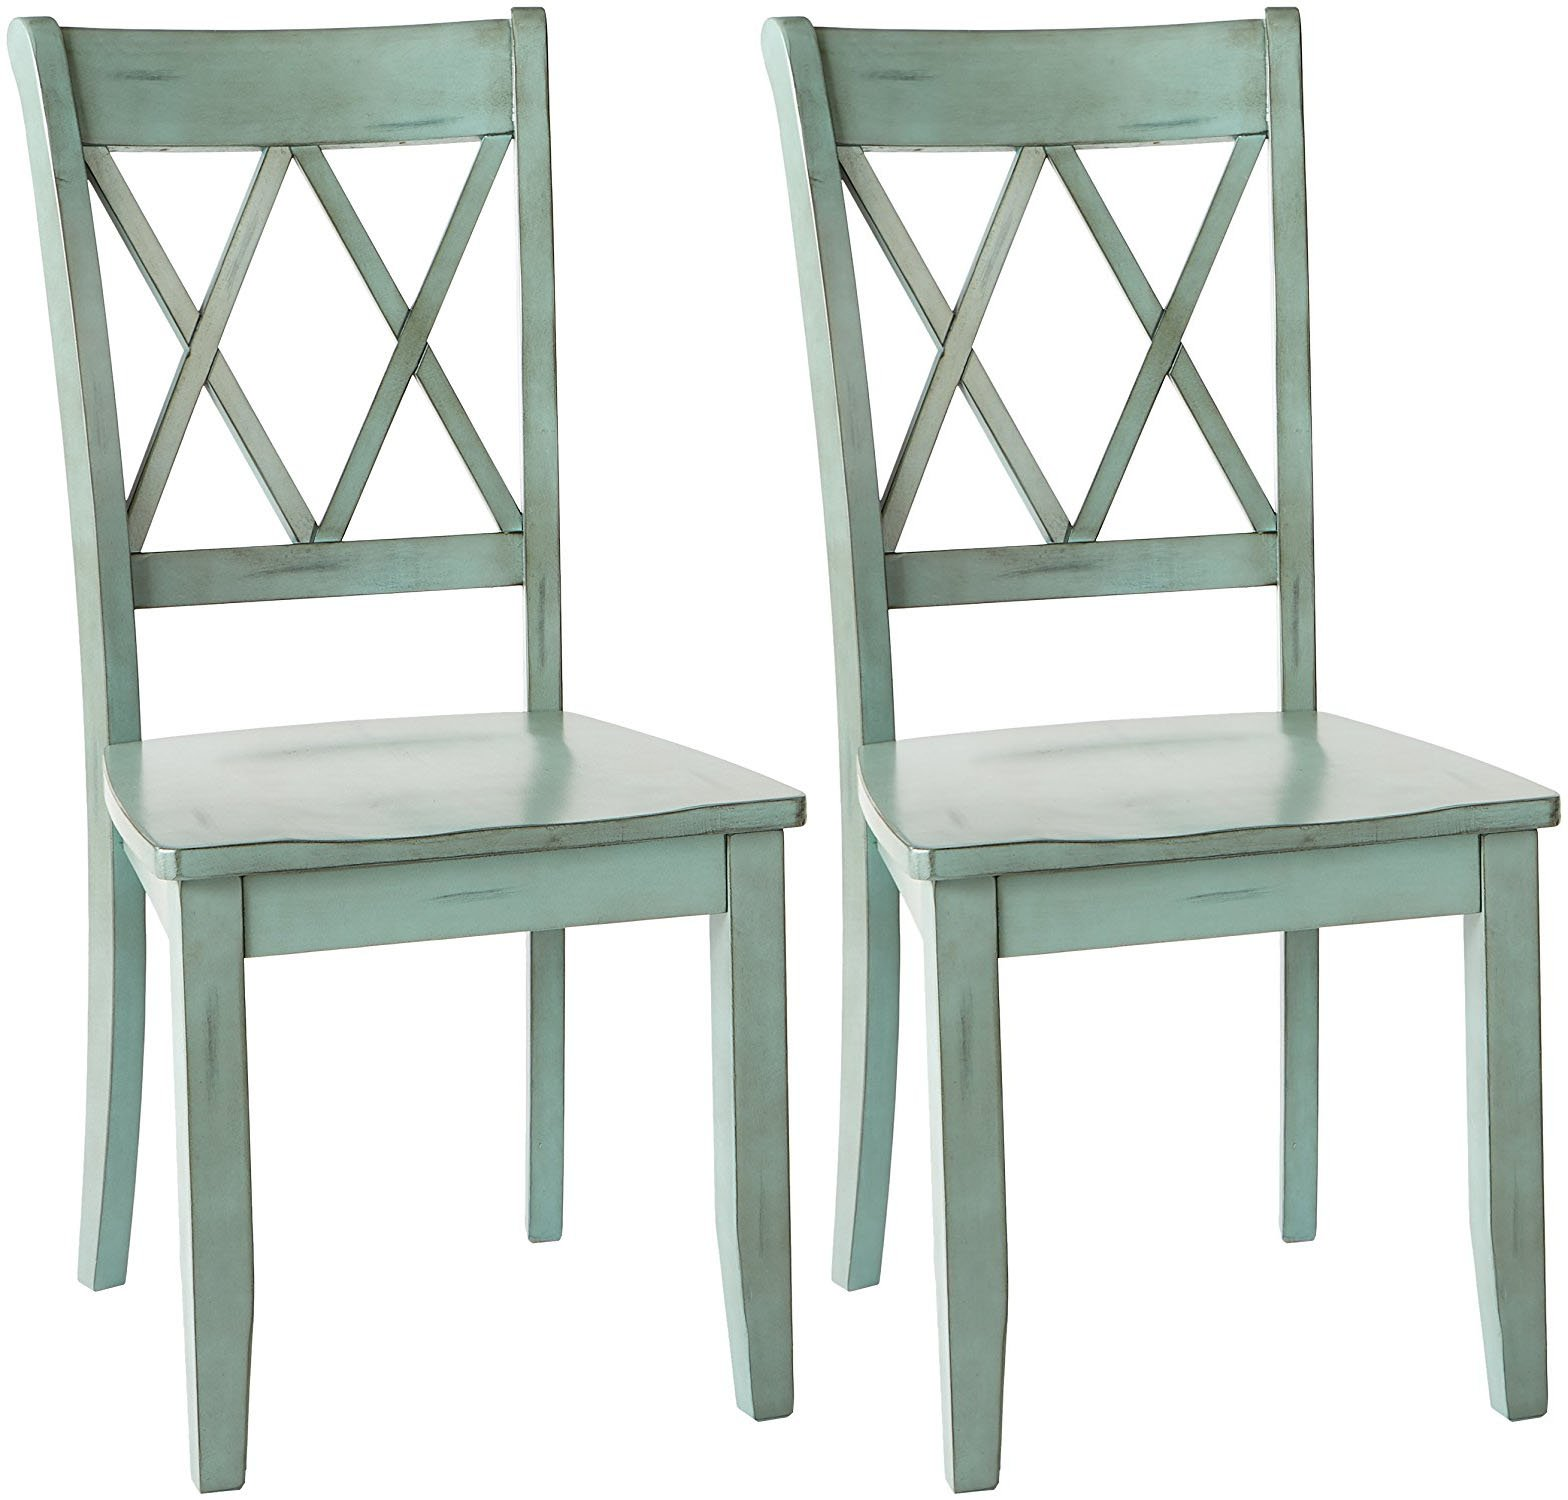 Ashley Furniture Signature Design - Mestler Dining Room Side Chair - Wood Seat - Set of 2 - Blue/Green by Signature Design by Ashley